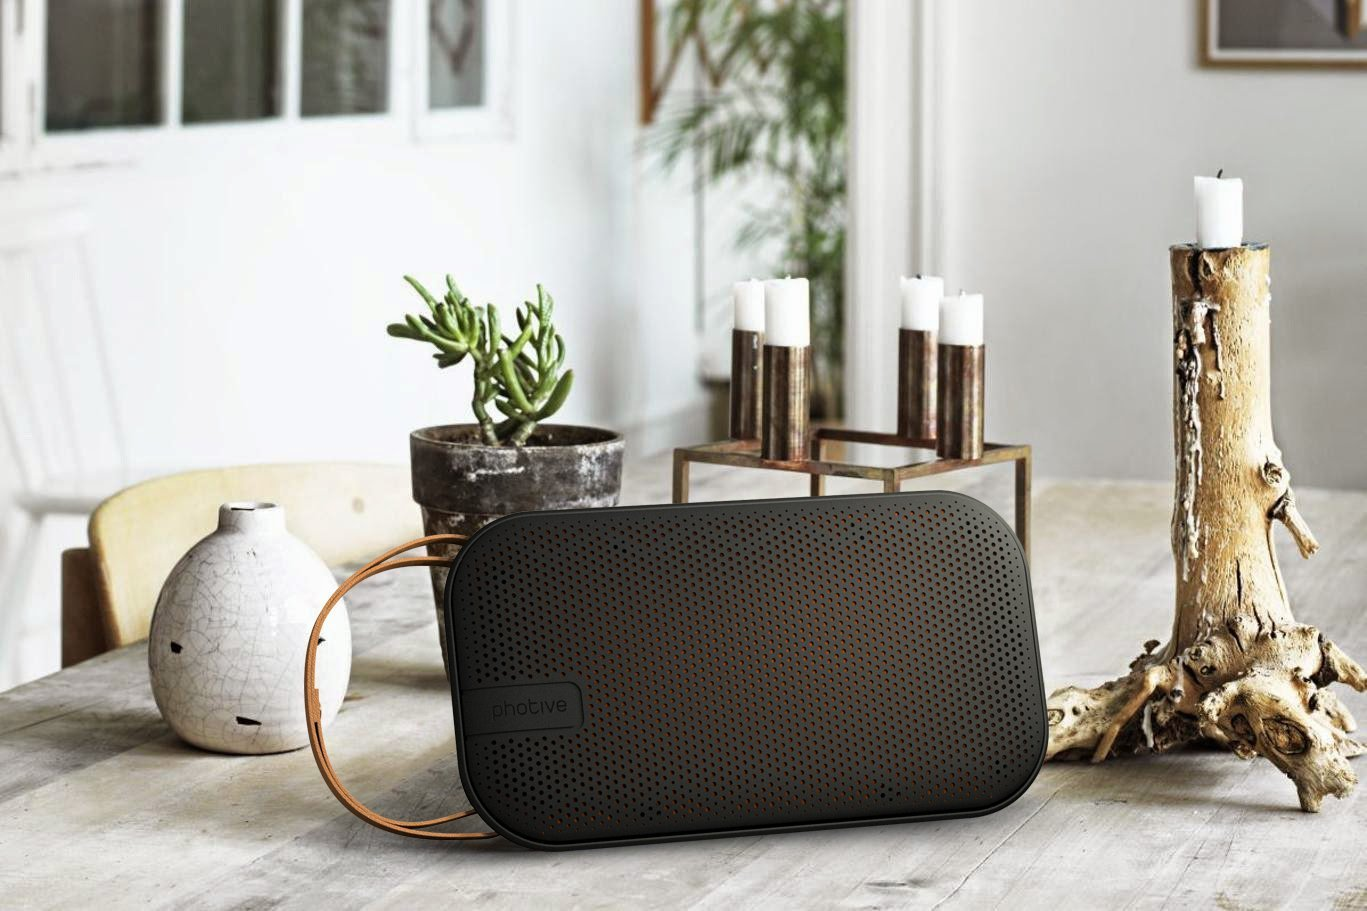 Photive S1 Premium Bluetooth Speaker